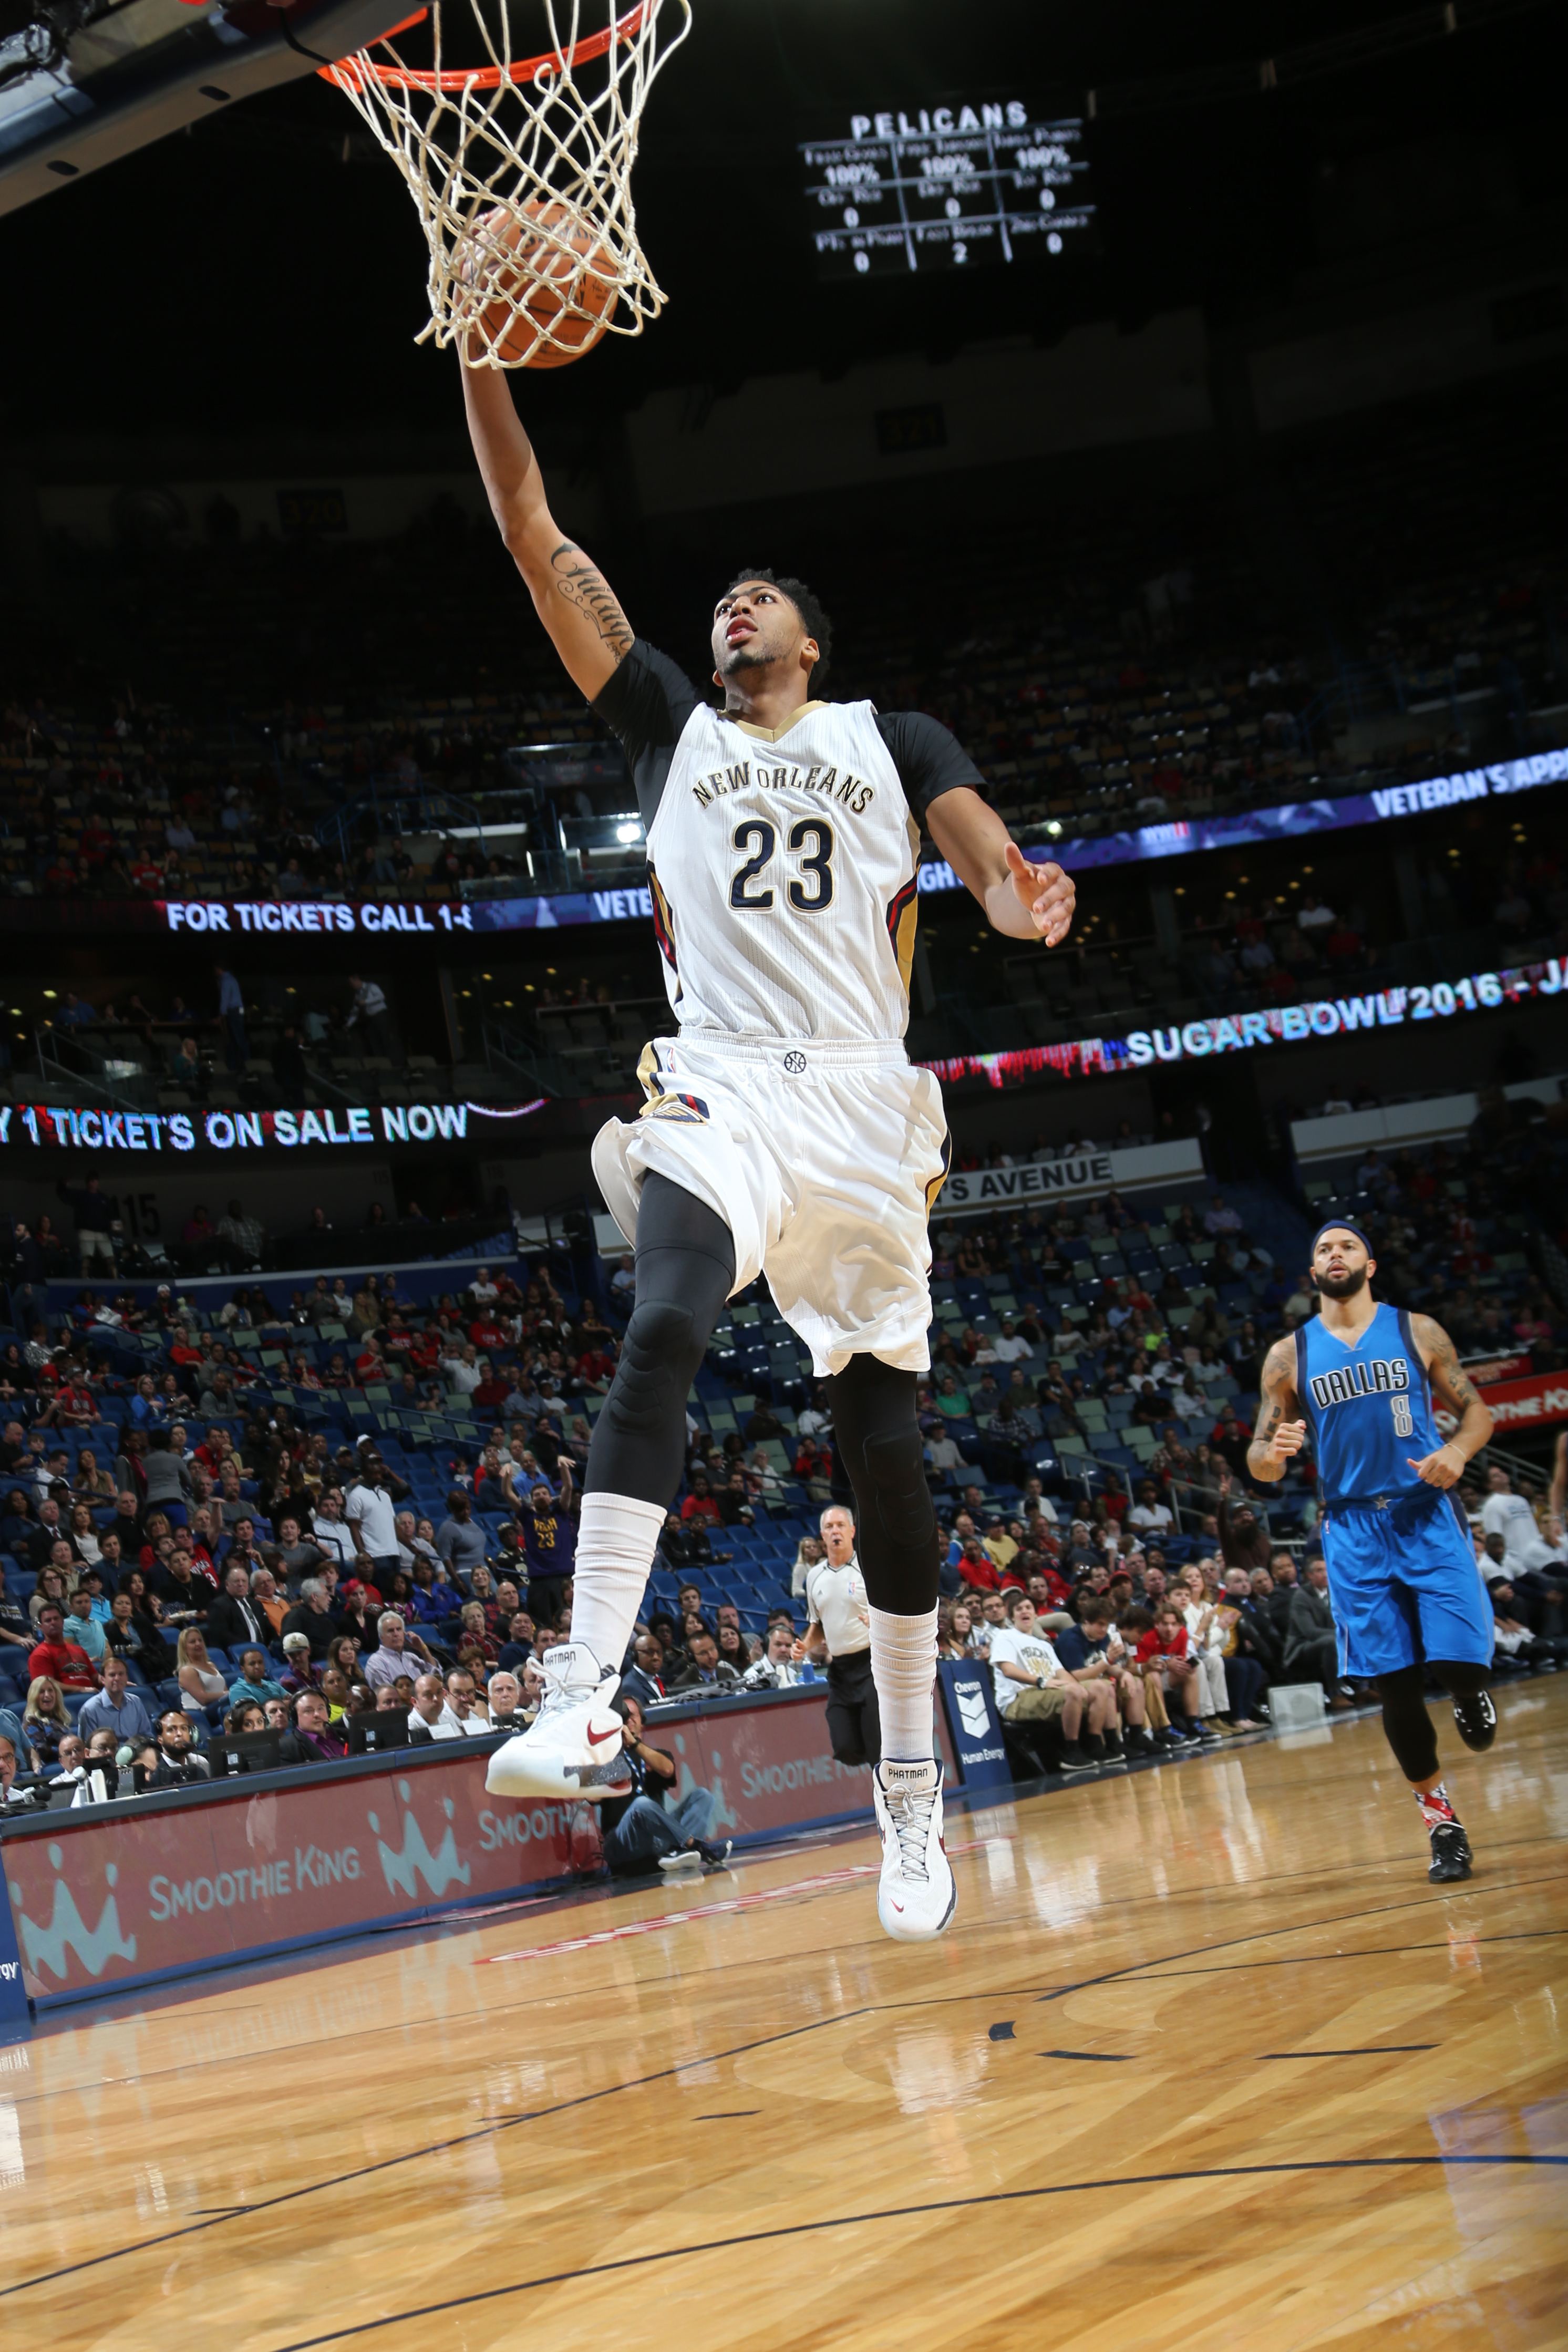 NEW ORLEANS, LA - NOVEMBER 10: Anthony Davis #23 of the New Orleans Pelicans goes for the lay up against the Dallas Mavericks during the game on November 10, 2015 at Smoothie King Center in New Orleans, Louisiana. (Photo by Layne Murdoch/NBAE via Getty Im